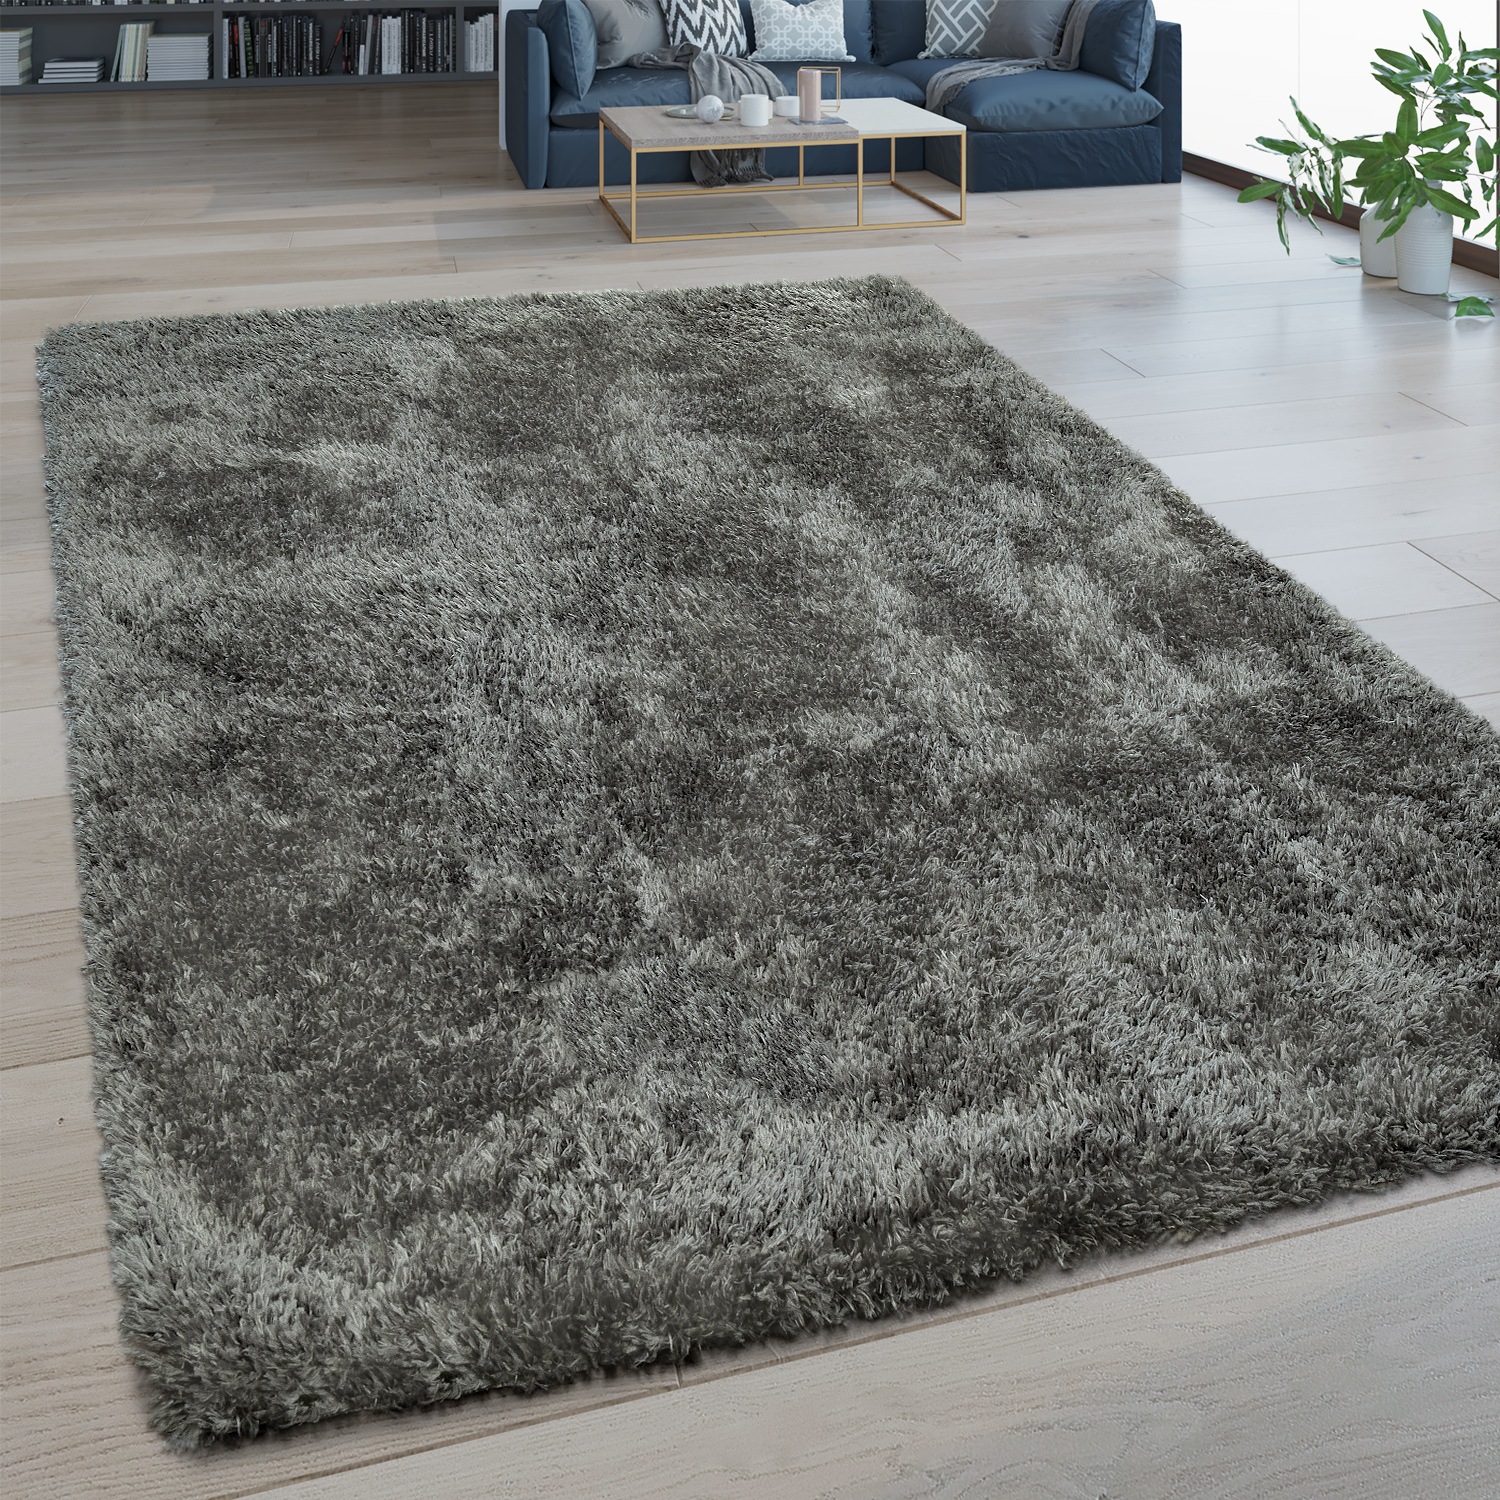 Deep Pile Living Room Rug Washable Shaggy Flokati Look One Colour In Grey